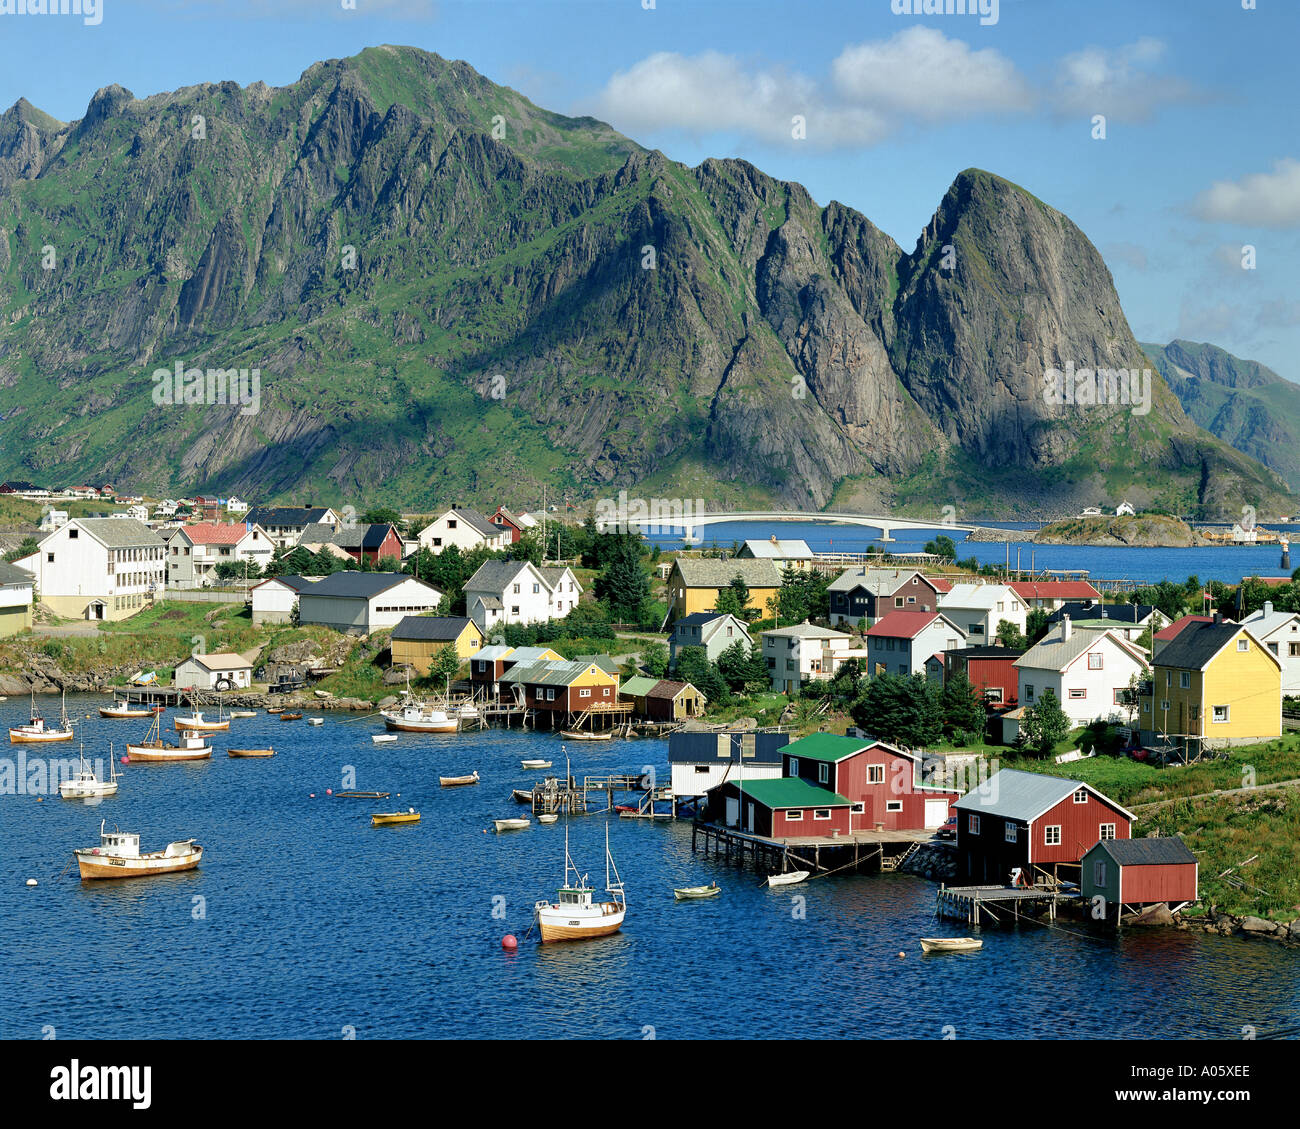 NO - LOFOTEN ISLANDS: Reine - Stock Image